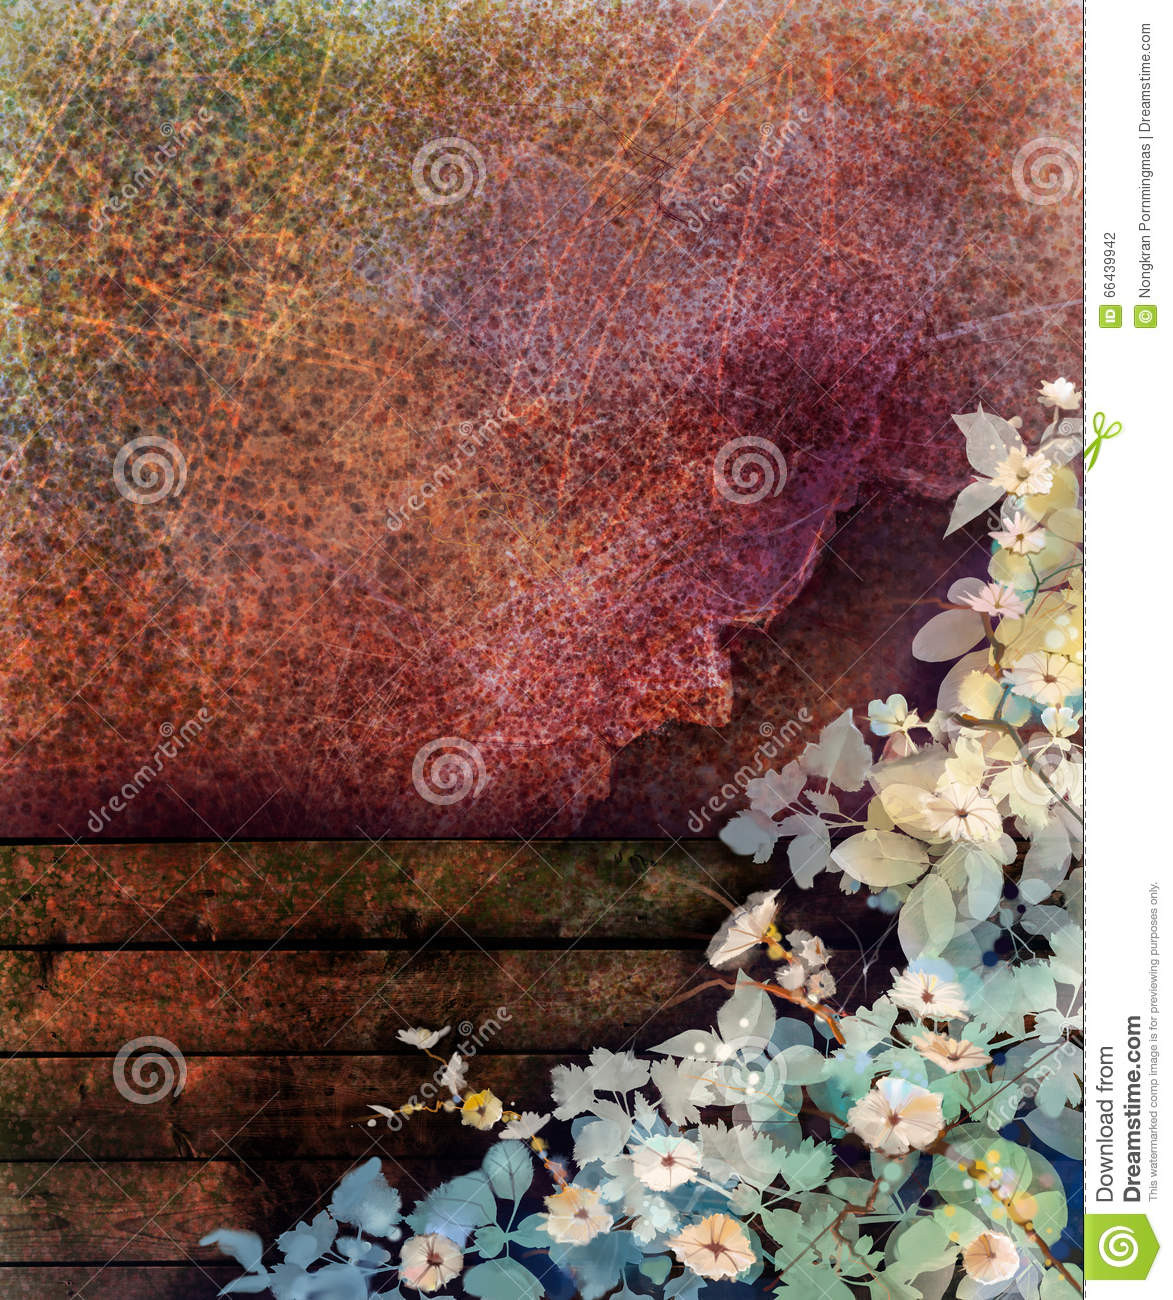 Abstract flower watercolor painting. Hand painted Ivy flowers and leaf on wall and wood fence grunge texture background